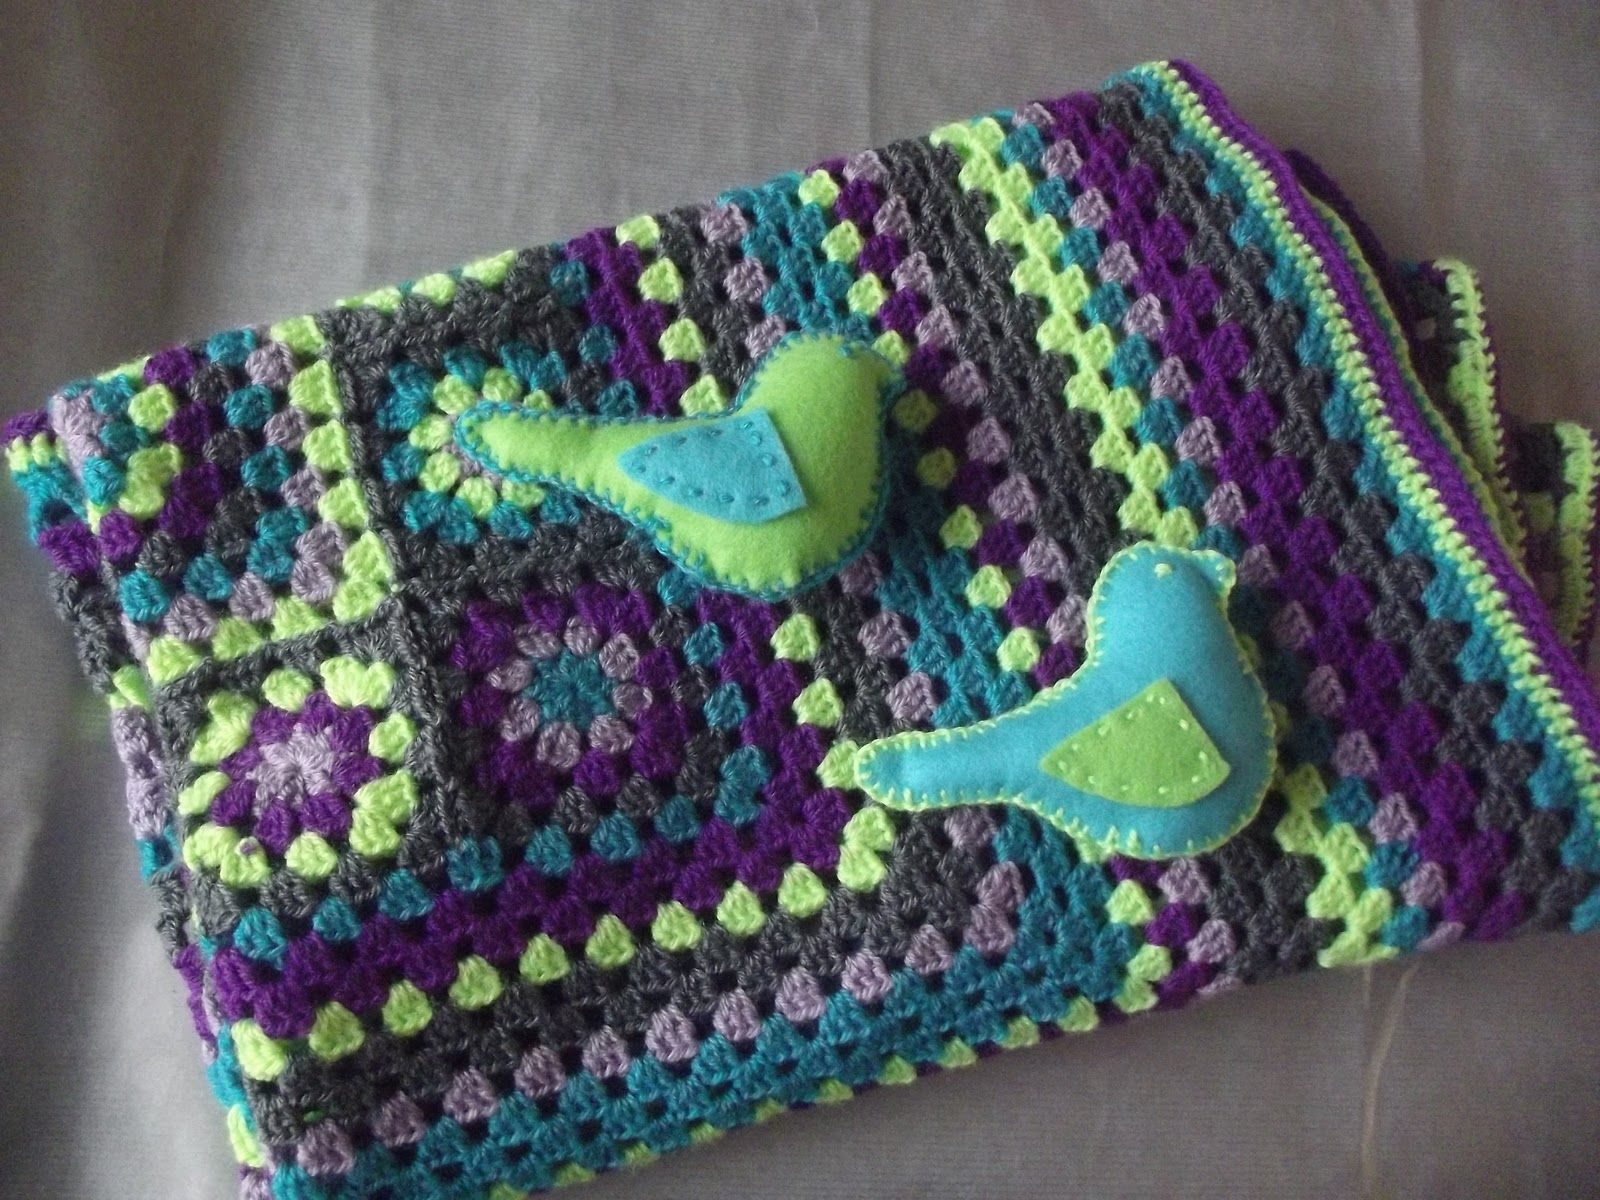 Green and Purples Granny Square Afghan